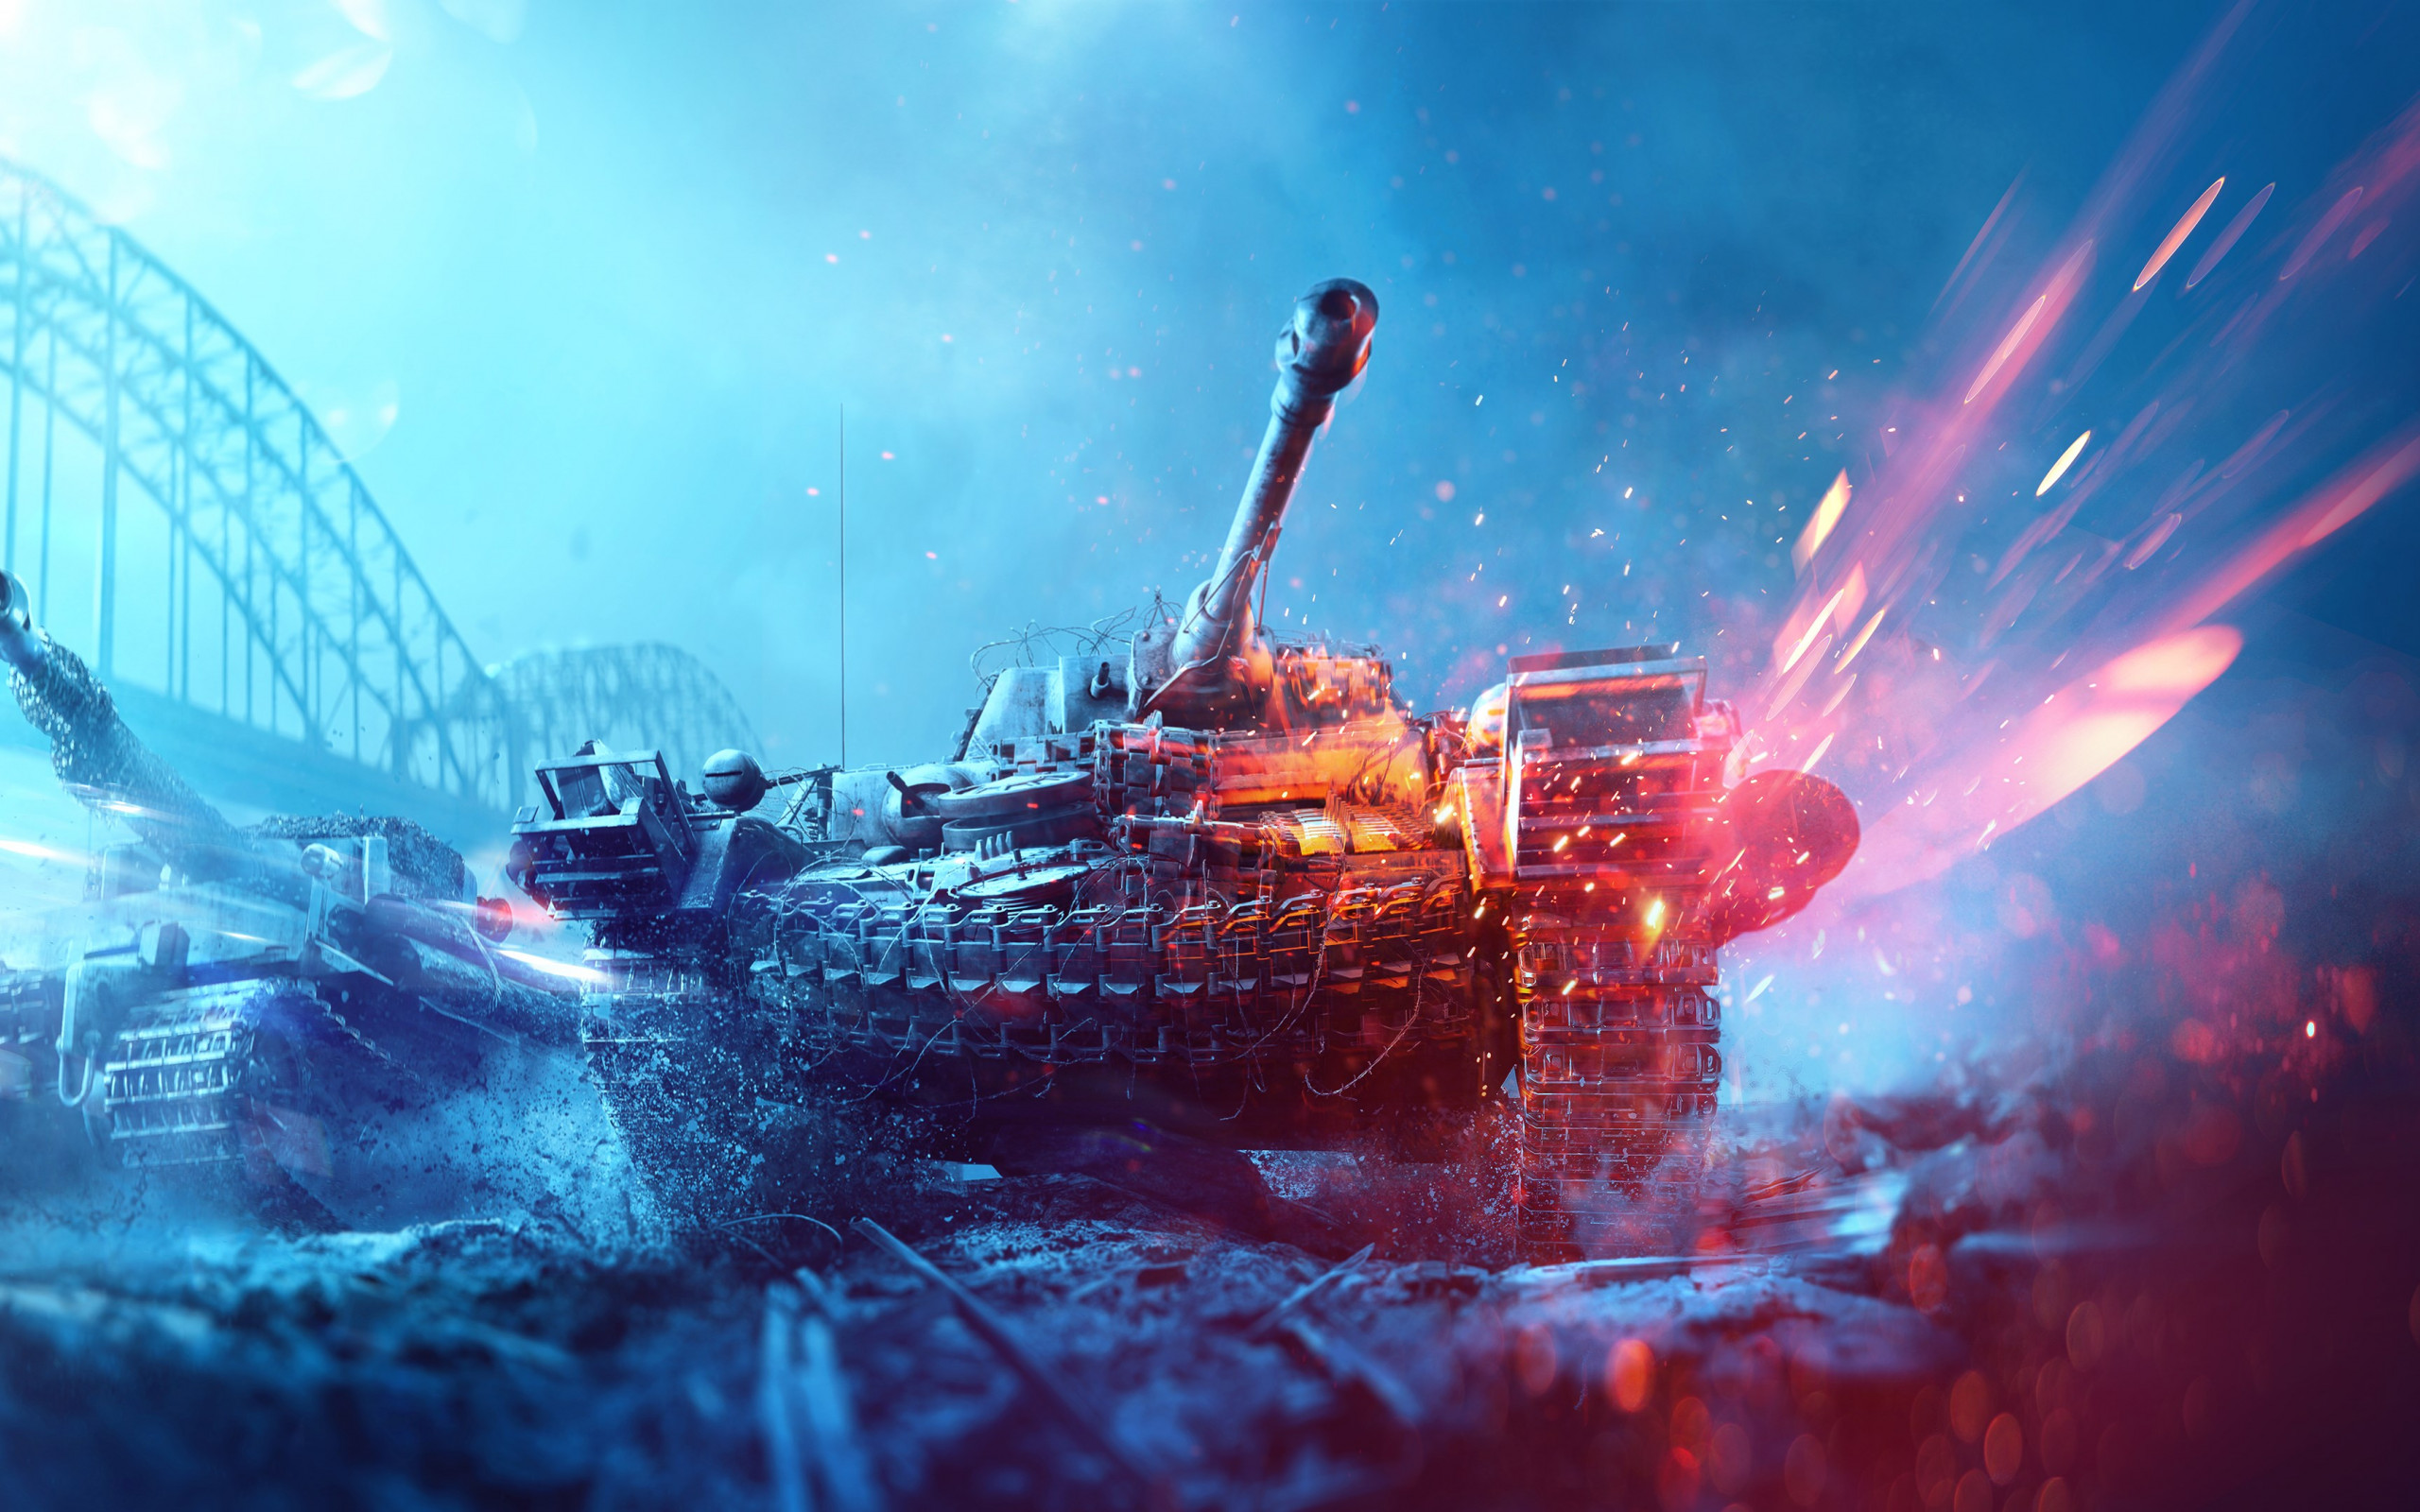 Battlefield 5 poster with tanks wallpaper 2560x1600